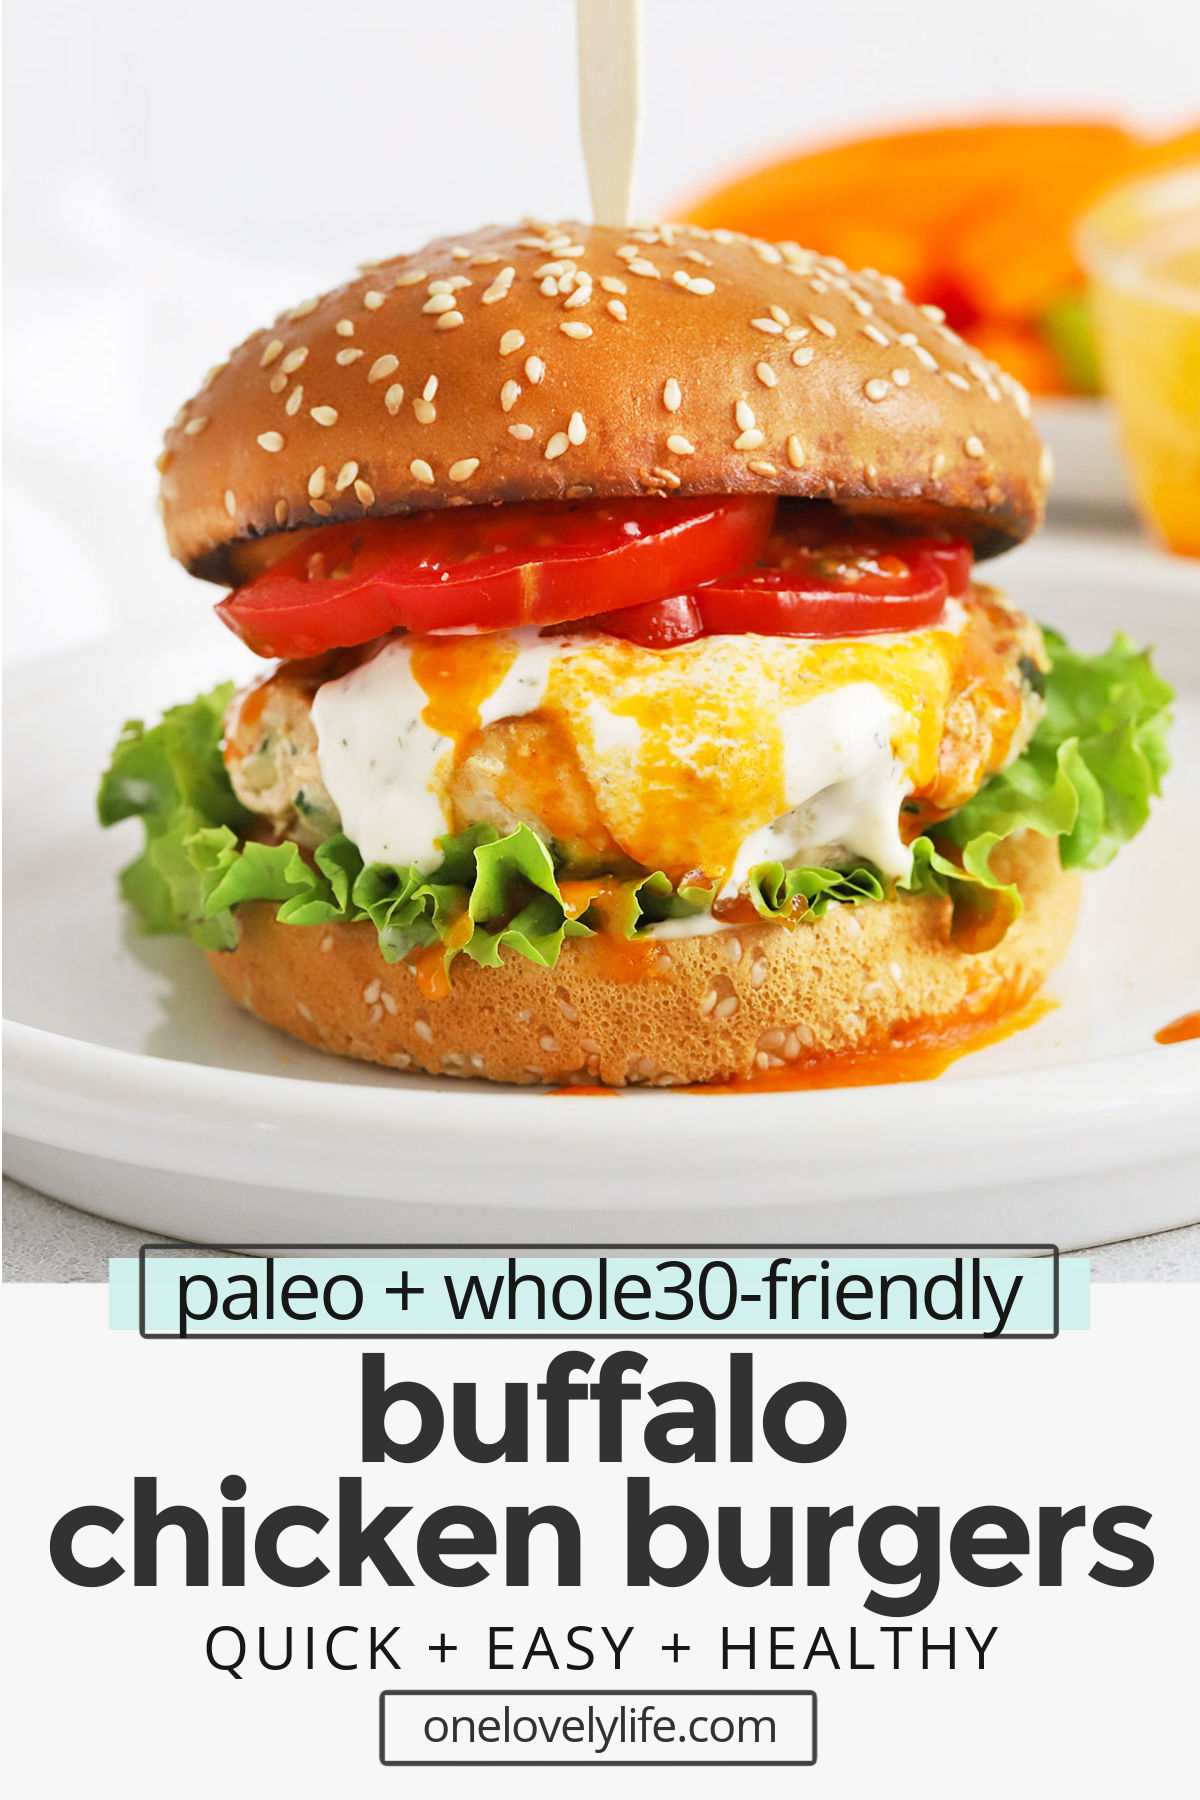 Healthy Buffalo Chicken Burgers - Lean chicken burgers with grated zucchini and a buffalo kick make a fresh, easy dinner any time! (Paleo & Whole30-Friendly) // paleo buffalo chicken burgers // whole30 buffalo chicken burgers // chicken burger recipe // healthy grilling recipe #glutenfree #burger #chicken #whole30 #paleo